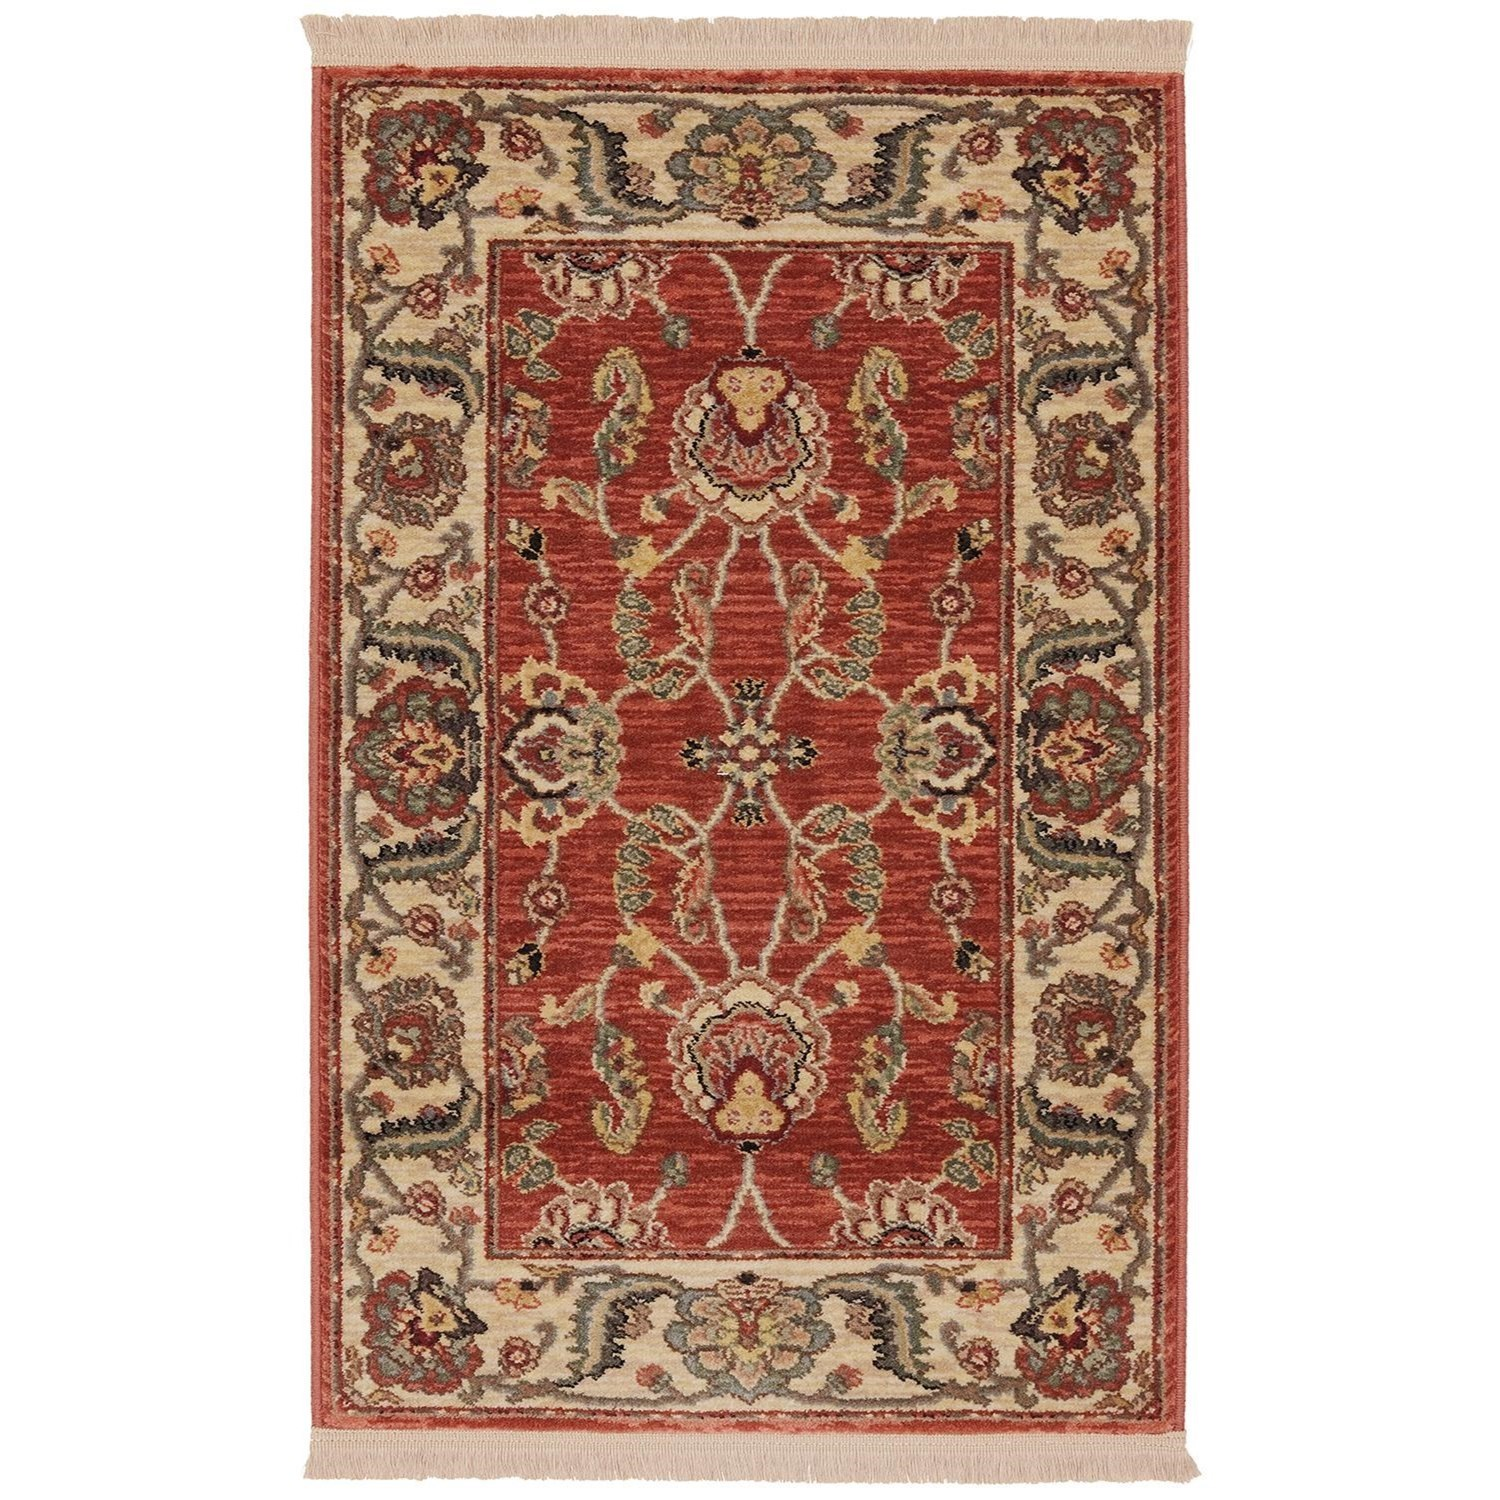 2'6x4' Agra Red Rug